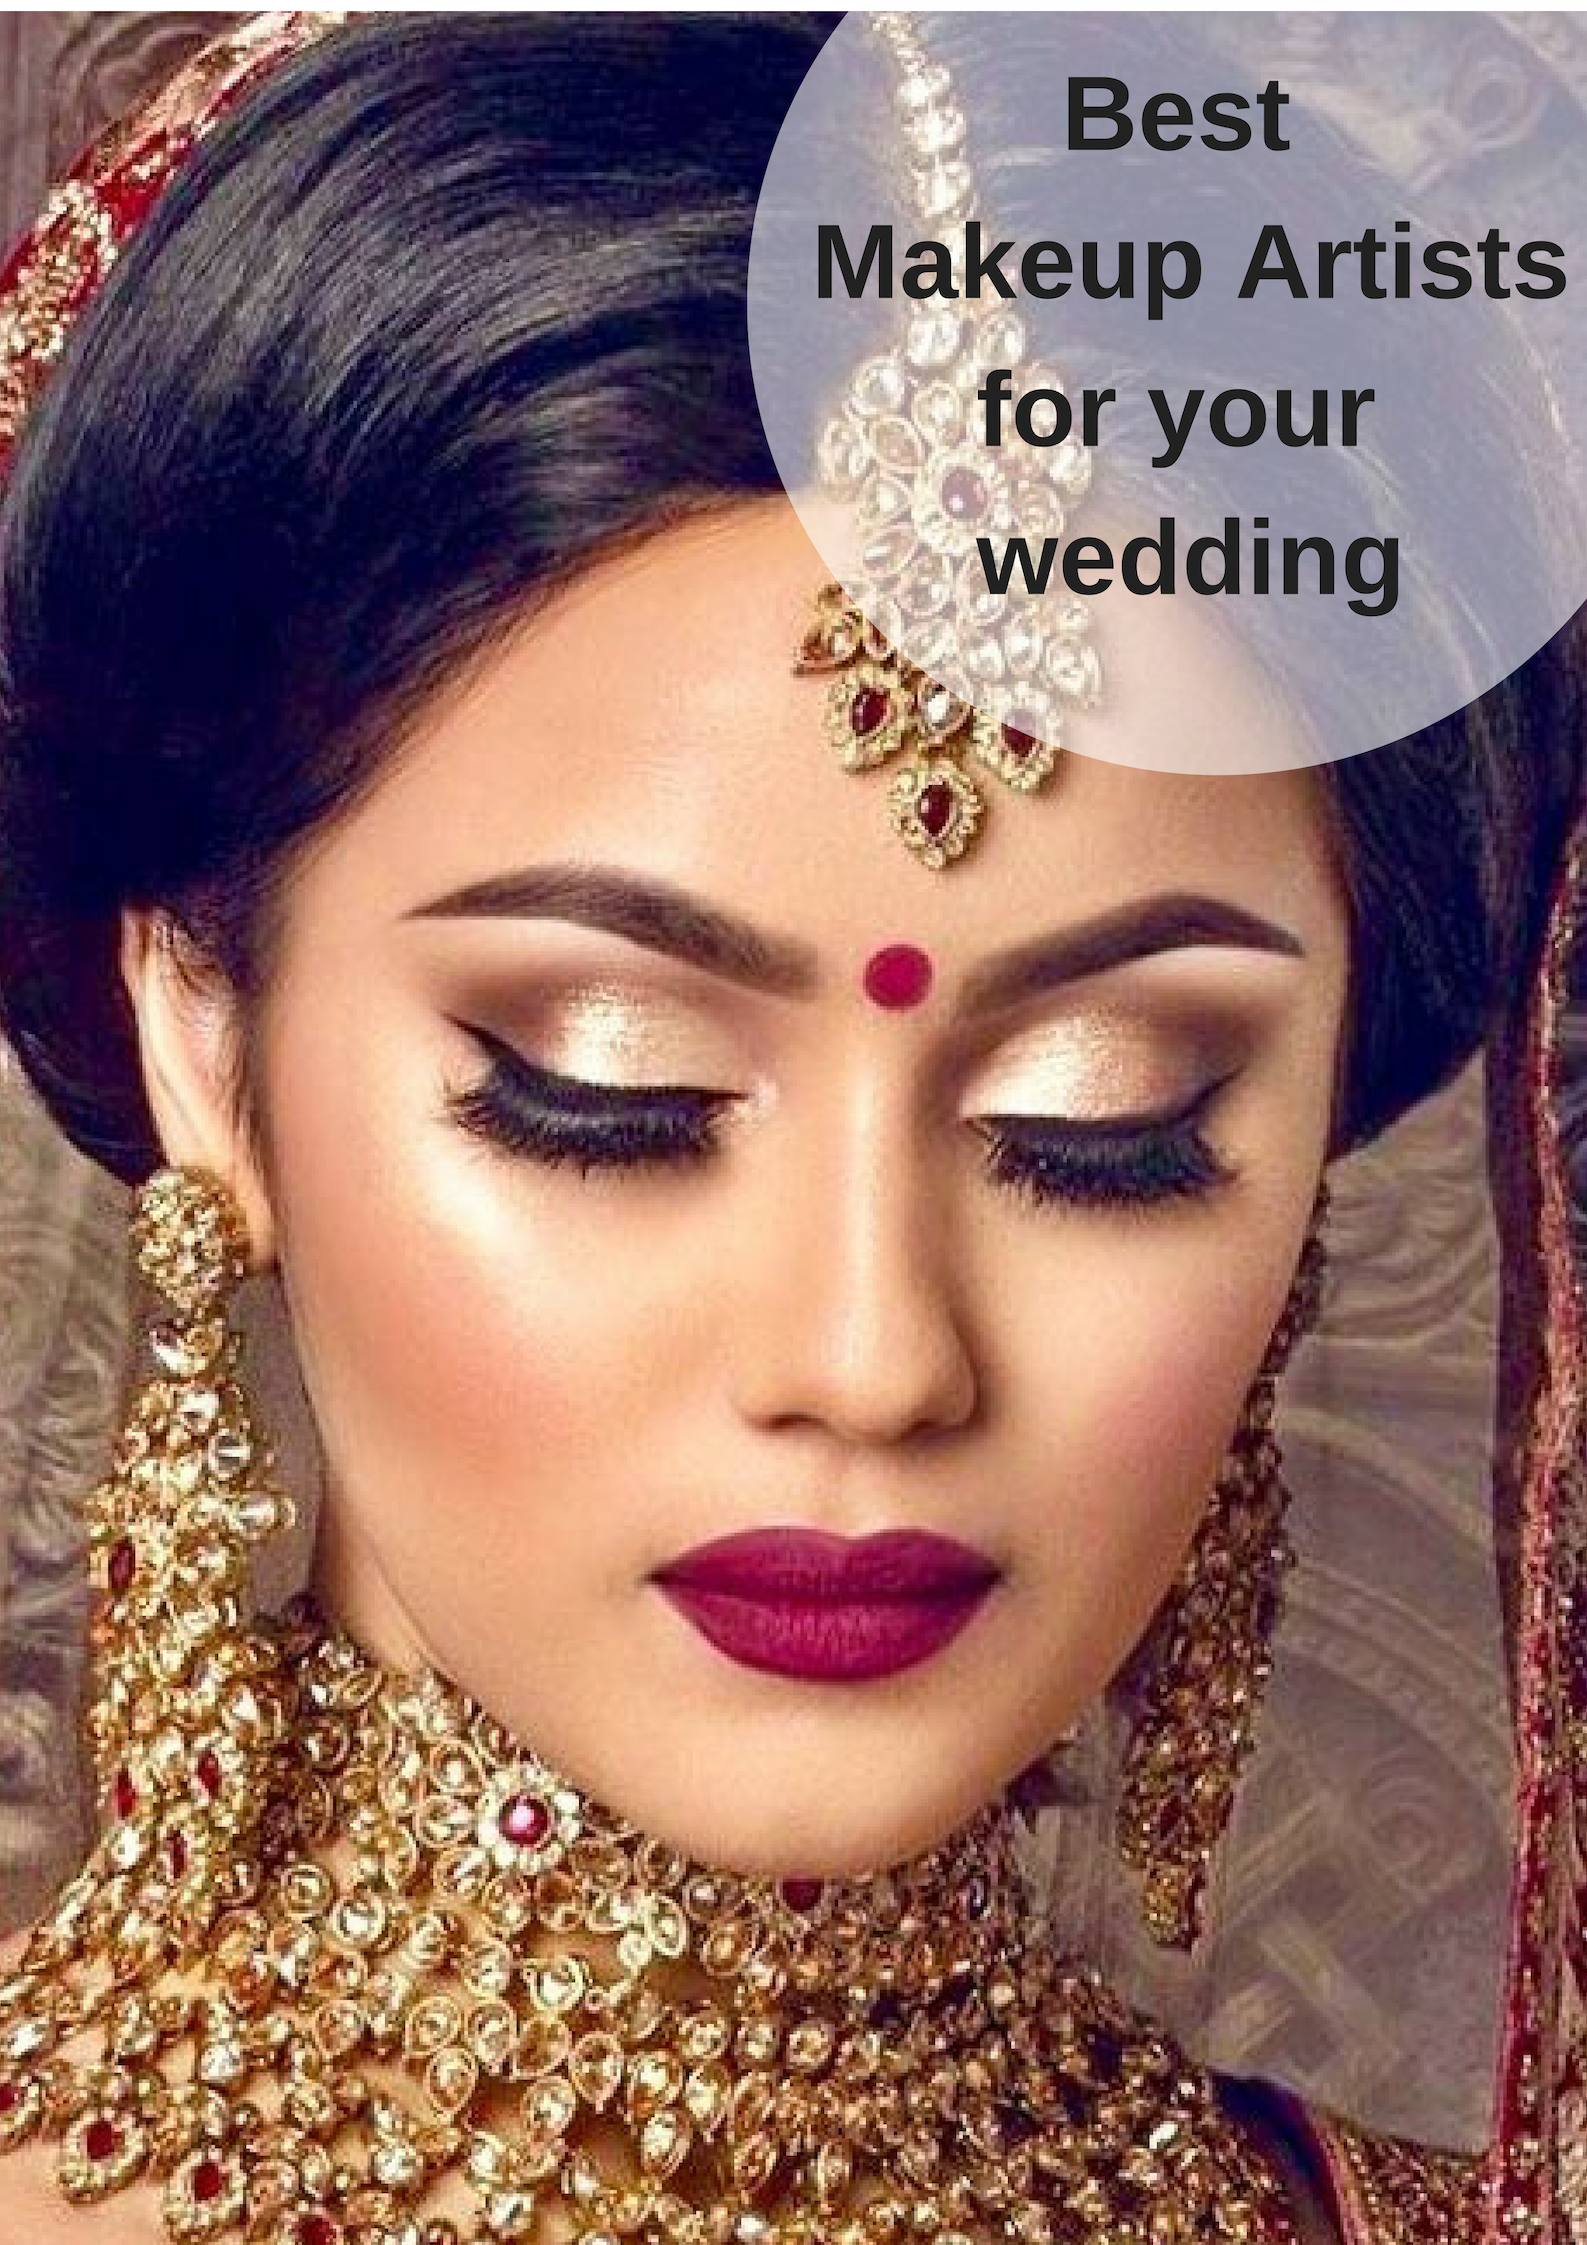 'BookEventZ Choice of the Best Makeup Artist' you can depend on for that showstopper bridal look. Click to keep reading.